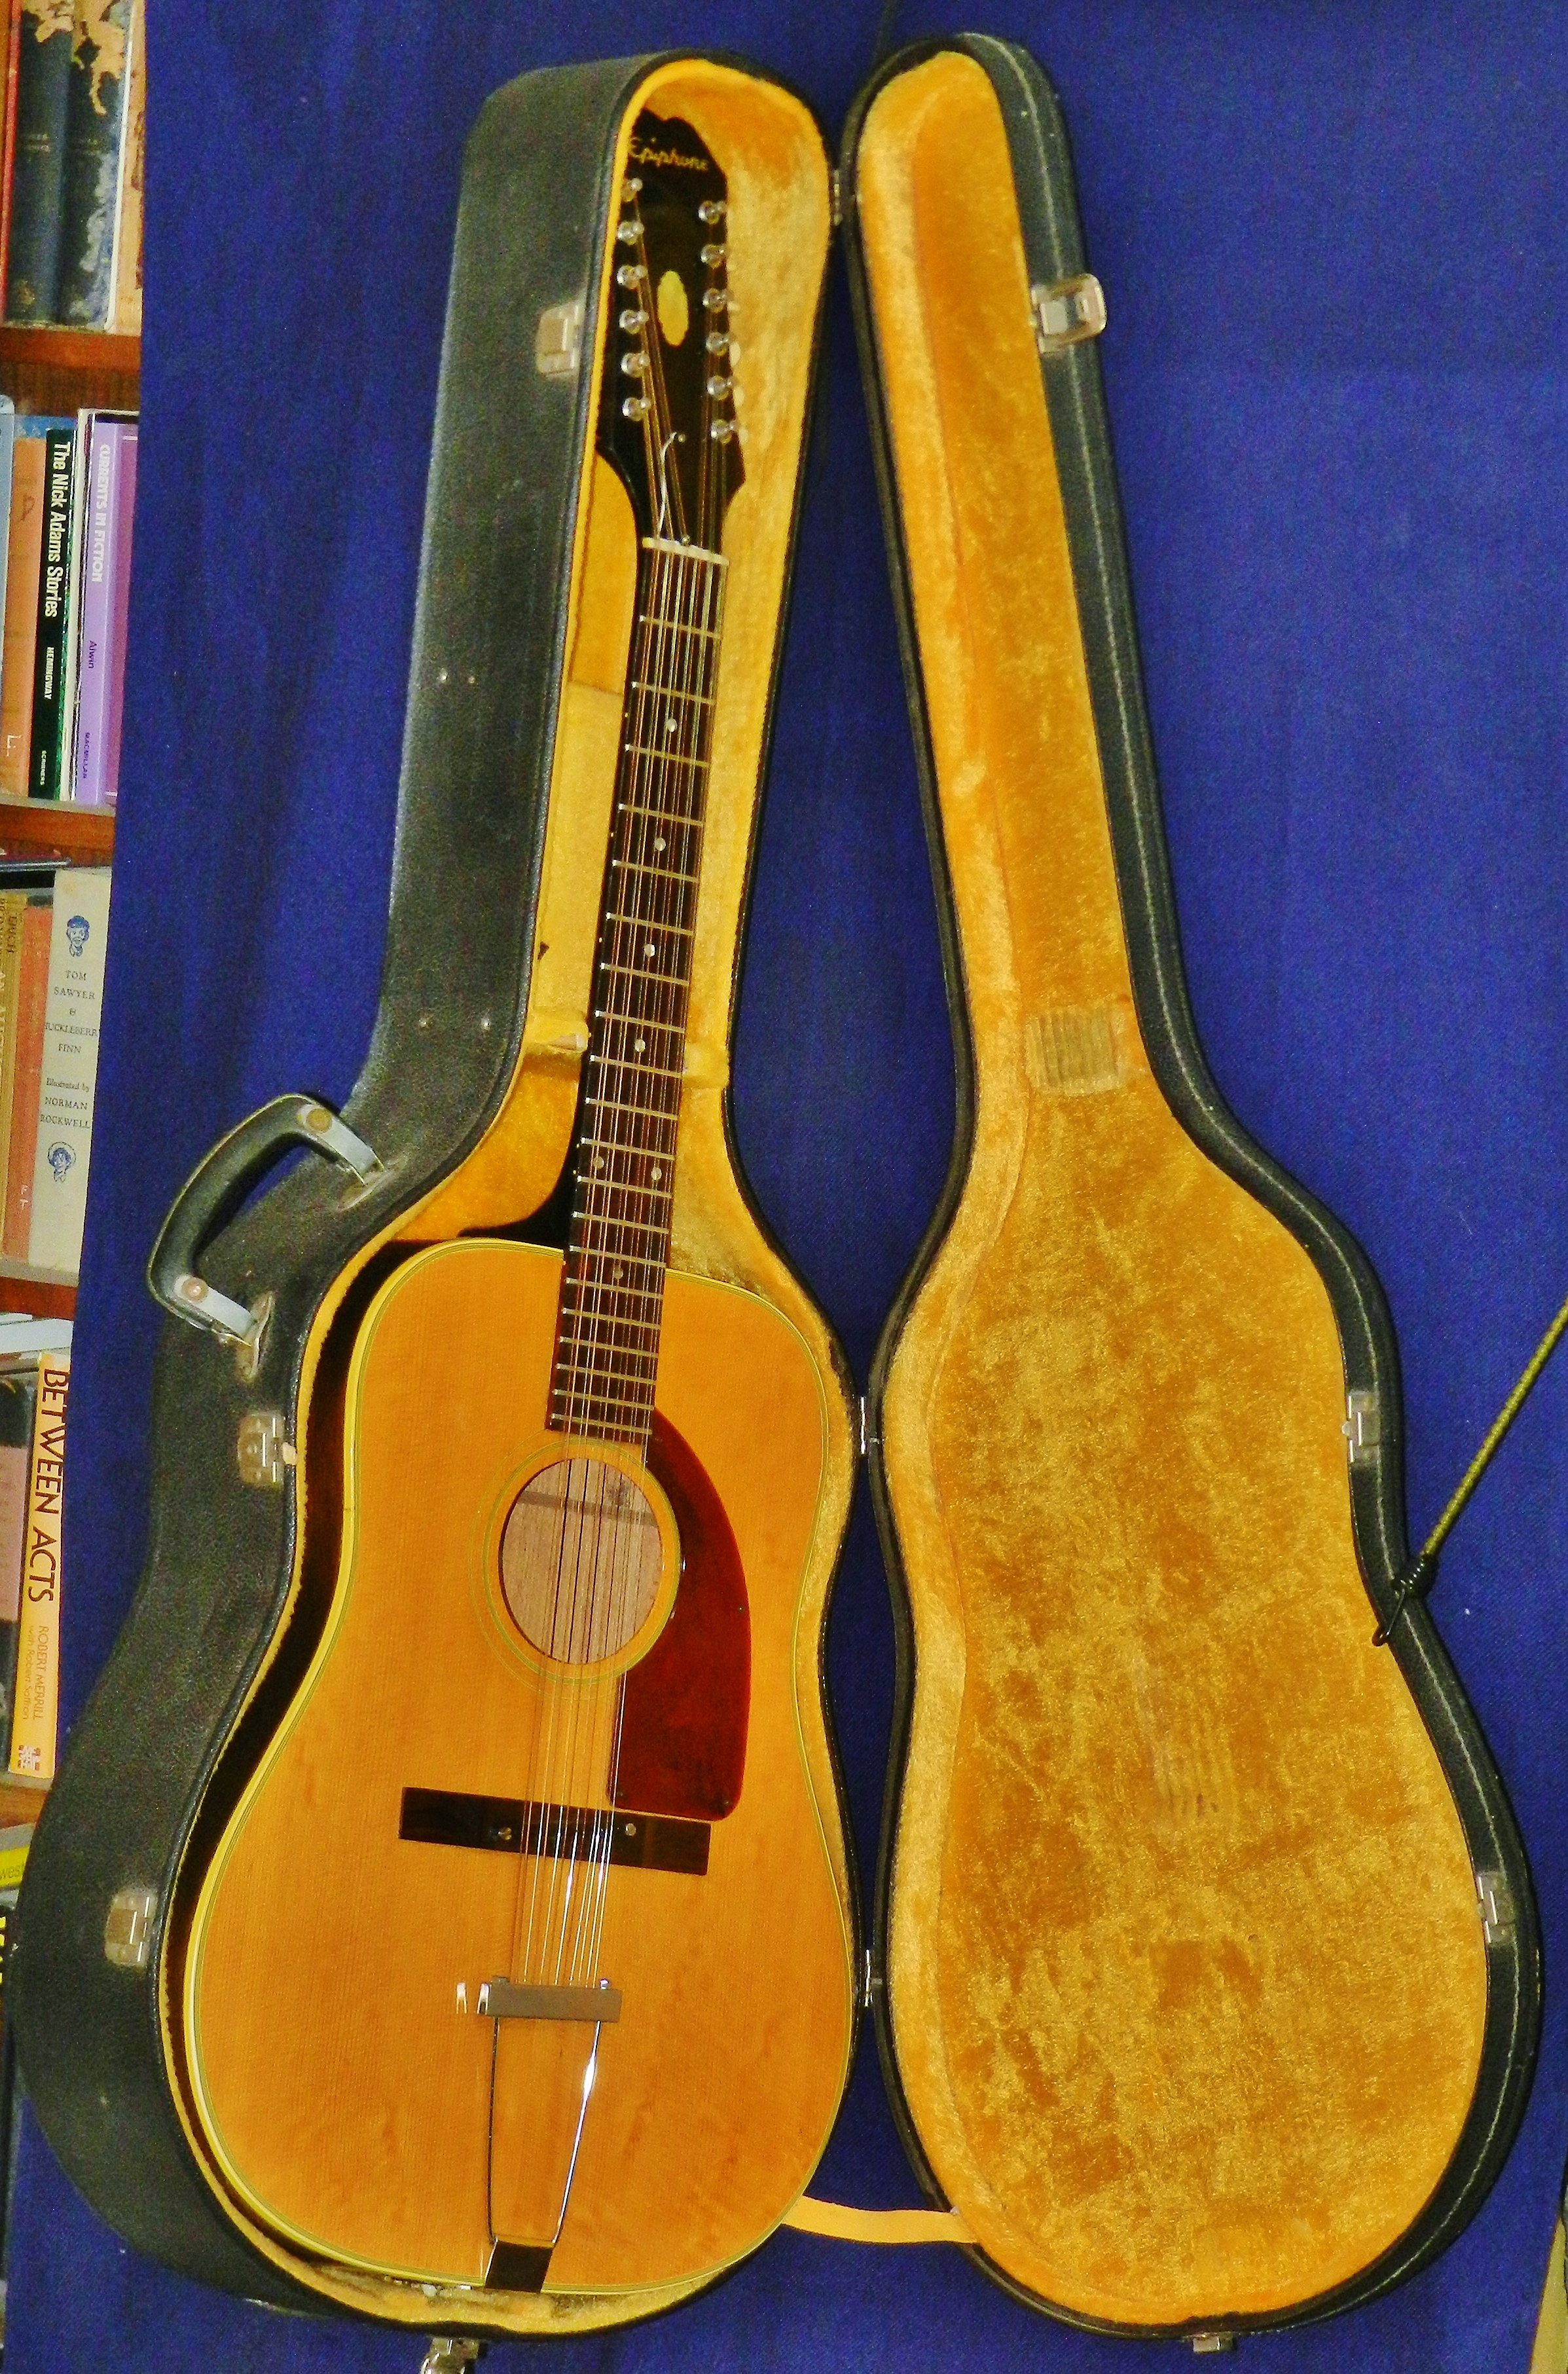 97e5274a49 1967 Gibson/Epiphone FT-112 Bard > Guitars 12 String Electric ...